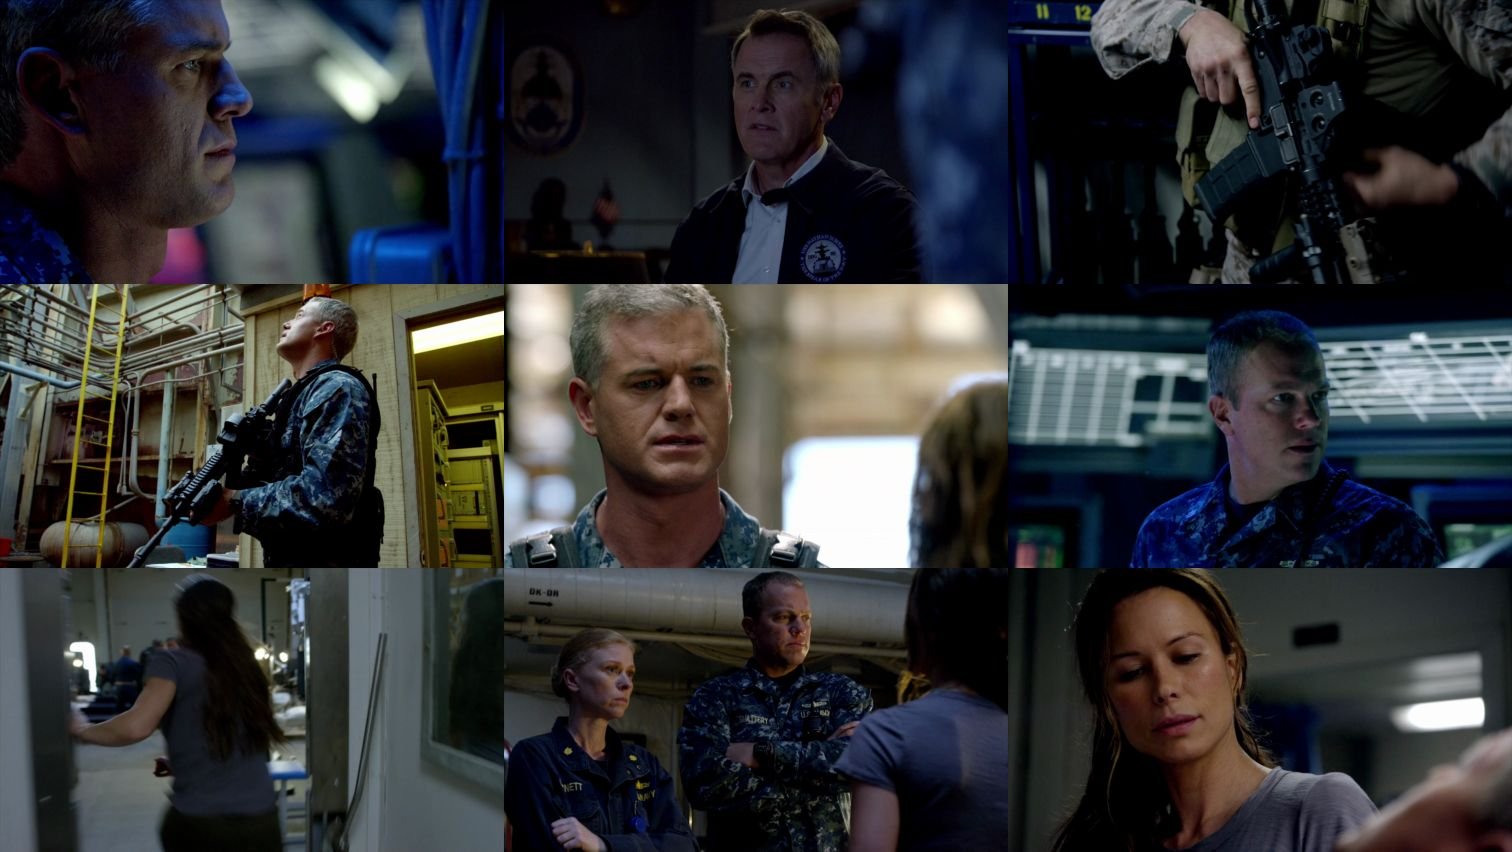 The Last Ship S02E11 720p HDTV X264-DIMENSION